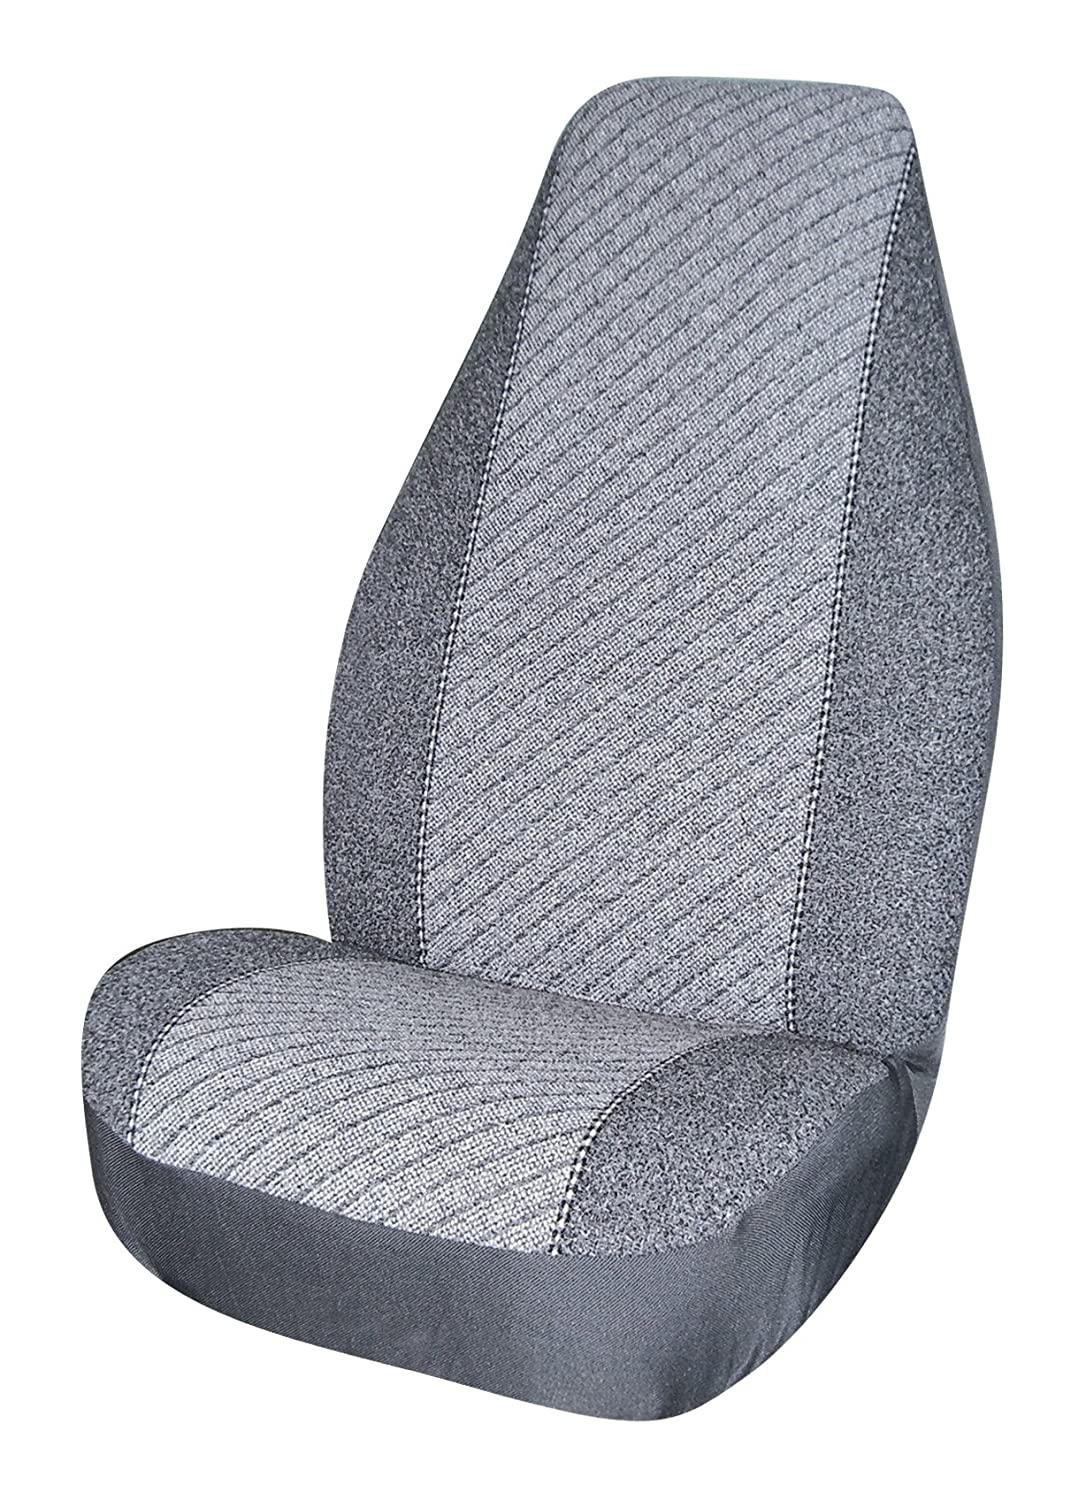 Pack of 2 Allison 67-0526GRY Gray Super Tweed Universal Bucket Seat Cover